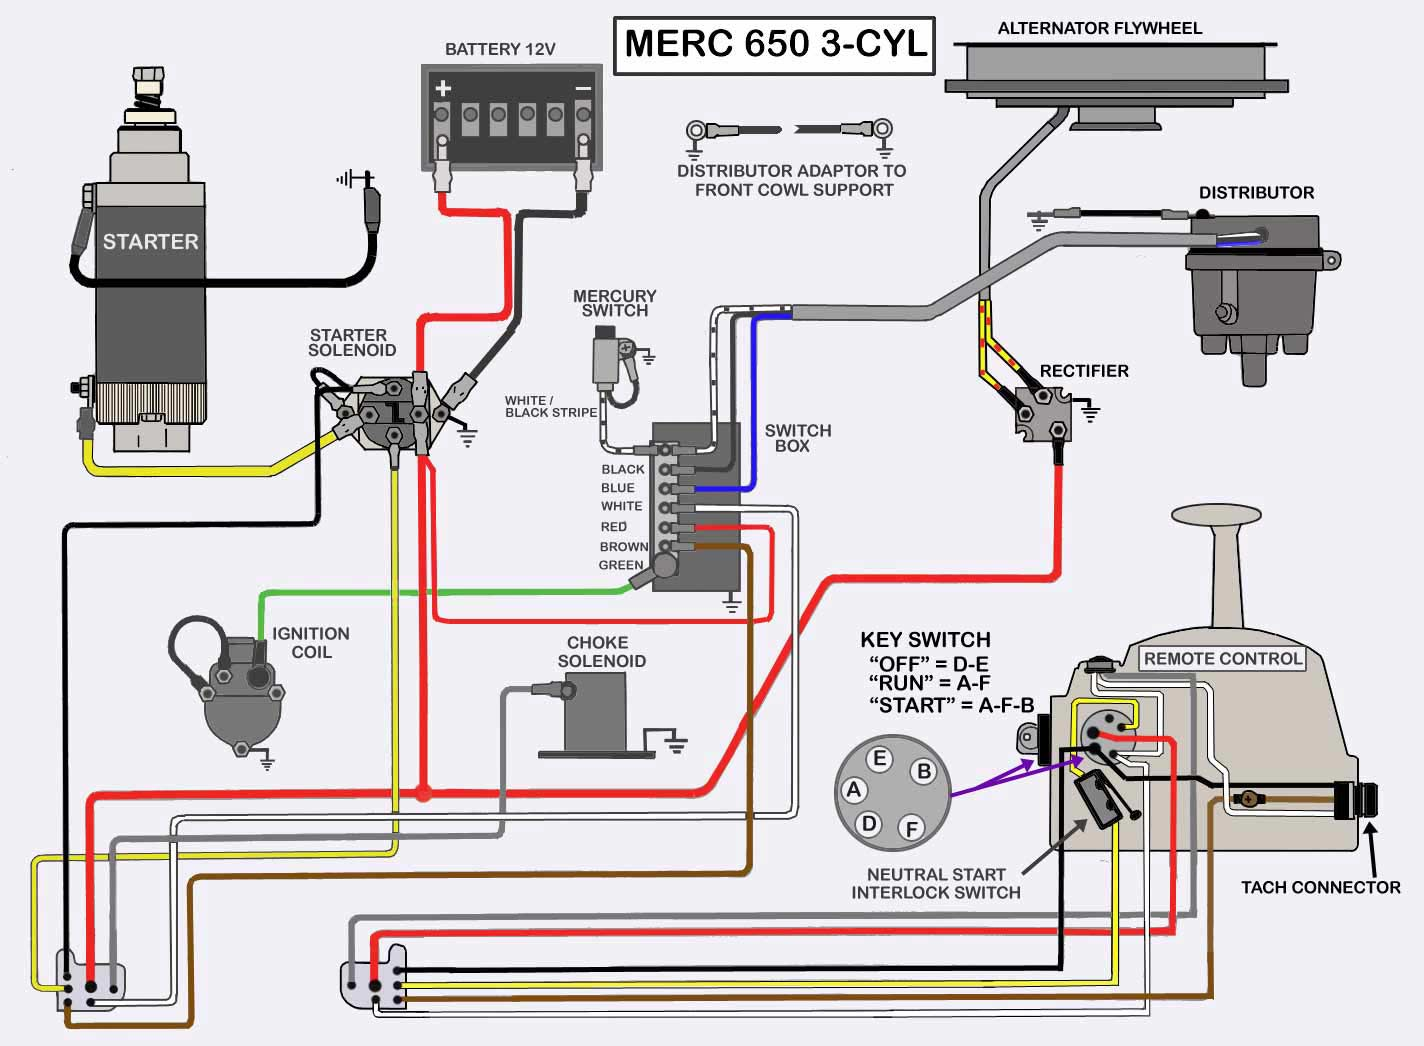 Mercury Wiring Diagram Data Schematic Opel Rekord E 700 Detailed Schematics Rh Keyplusrubber Com Stator